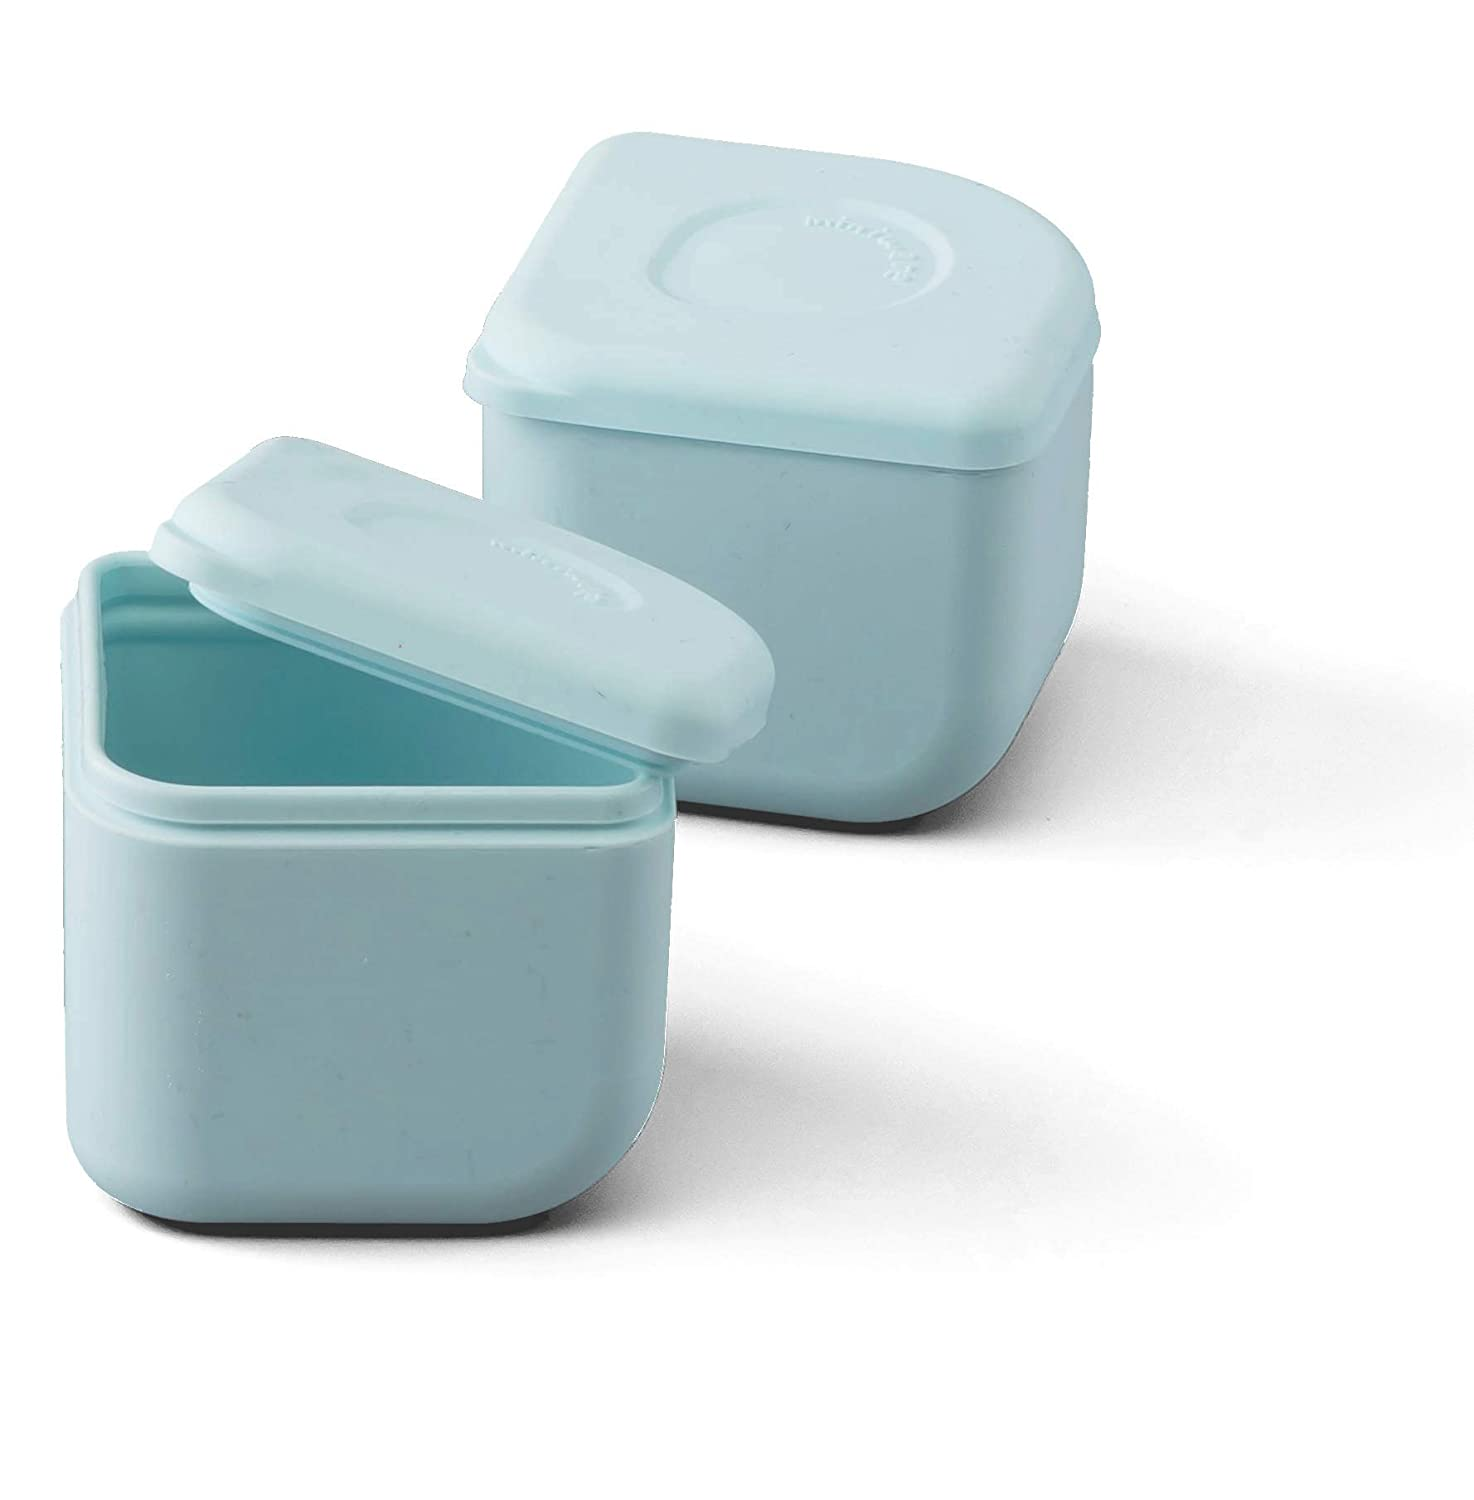 Miniware Silipods Aqua 2 Pack   Leakproof Durable Food Grade Silicone Hot and Cold Food Storage for Baby Toddler Kids   Dishwasher, Fridge, and Freezer Safe   for Purees, Soups, Dressings, and More